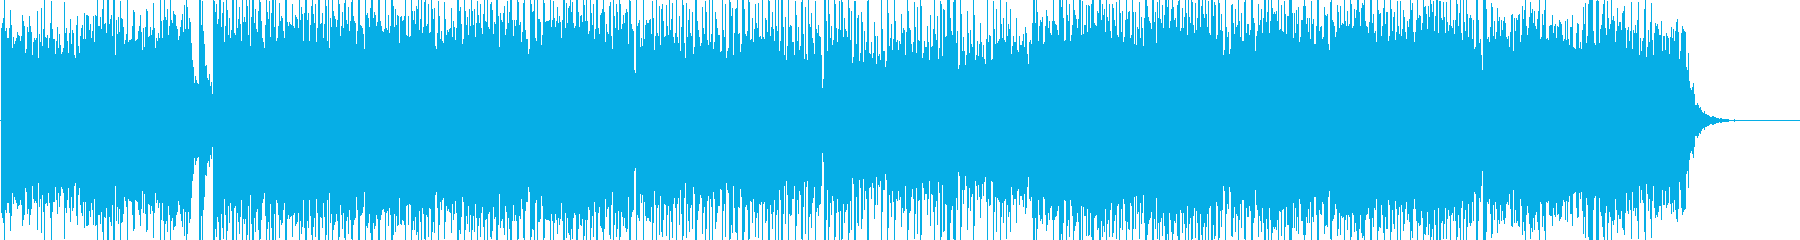 Eurobeat like car chase anime's reproduced waveform